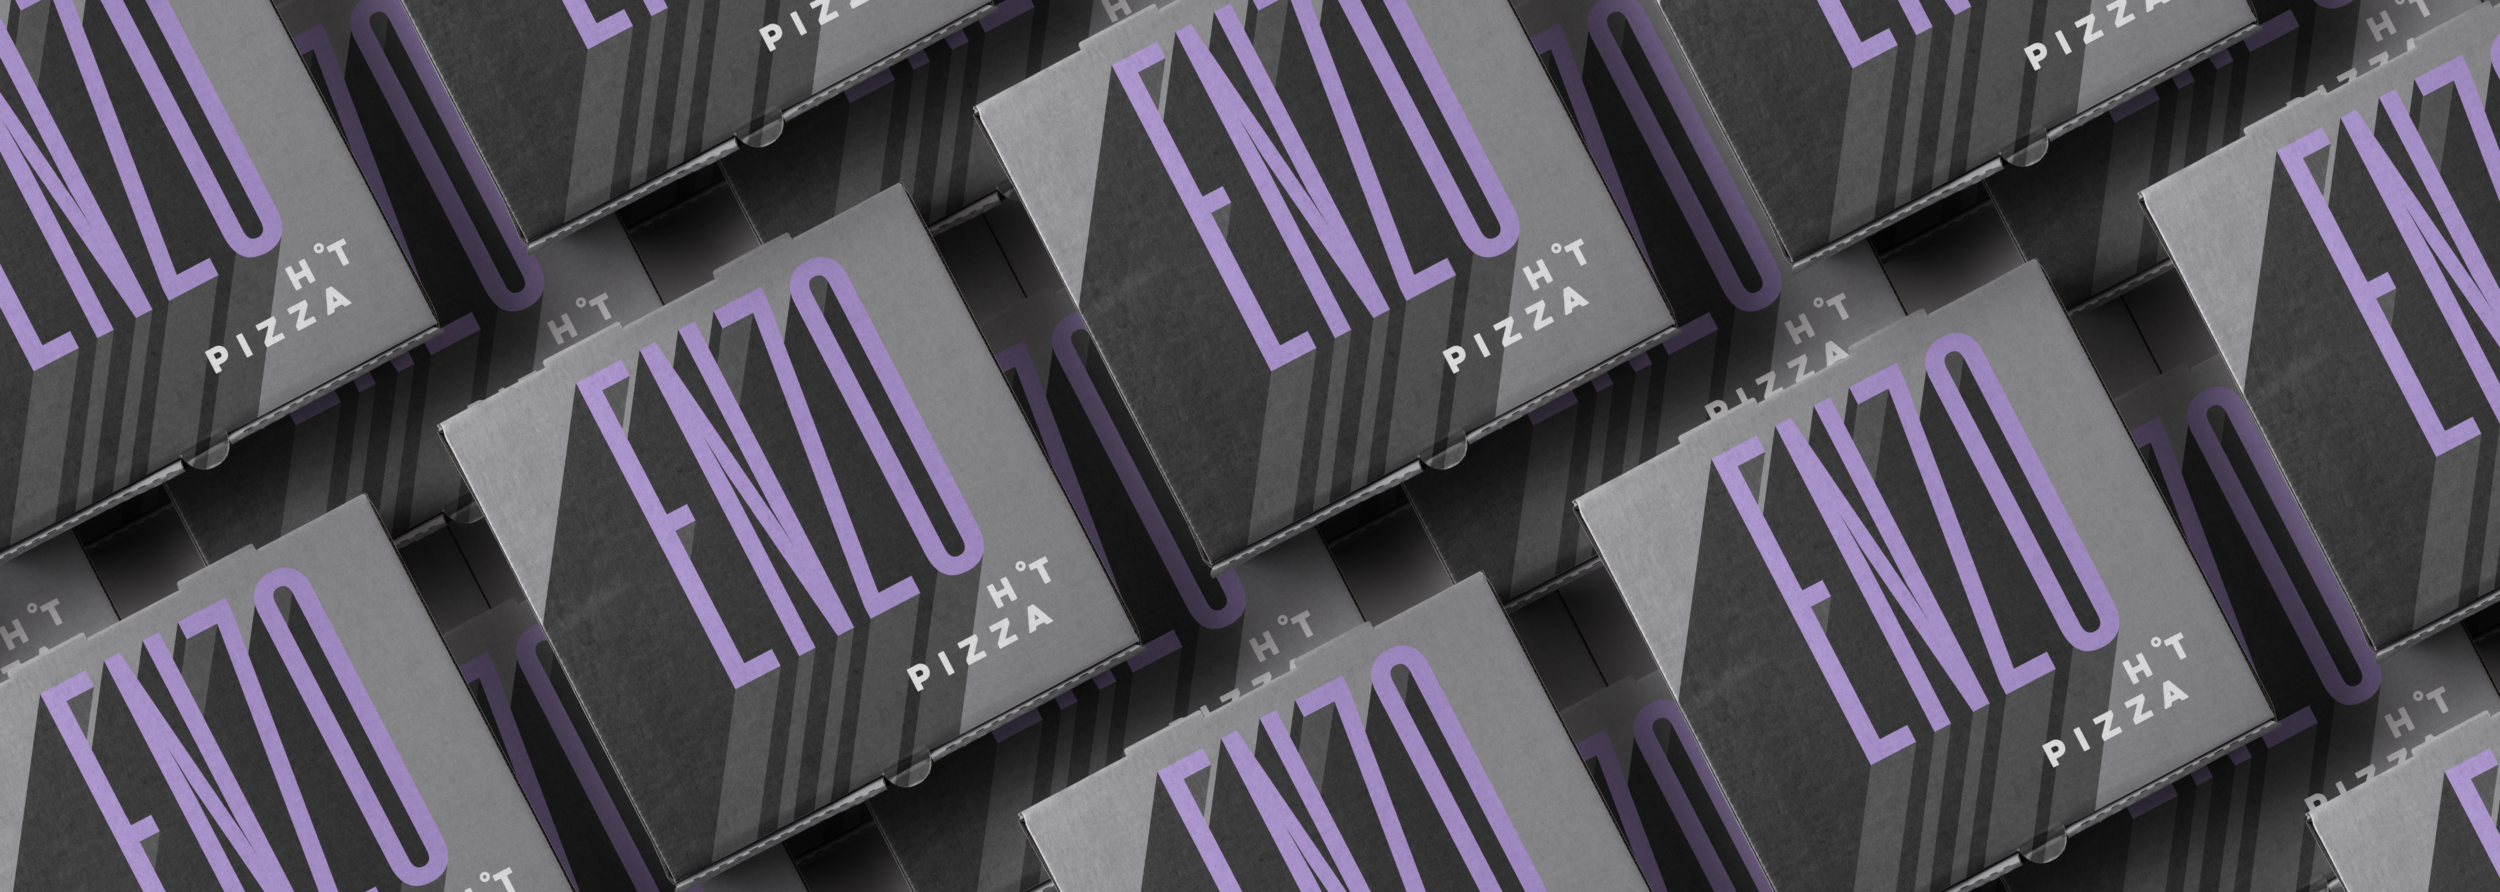 candybrophycreative - Enzo Hot Pizza Branding7.png